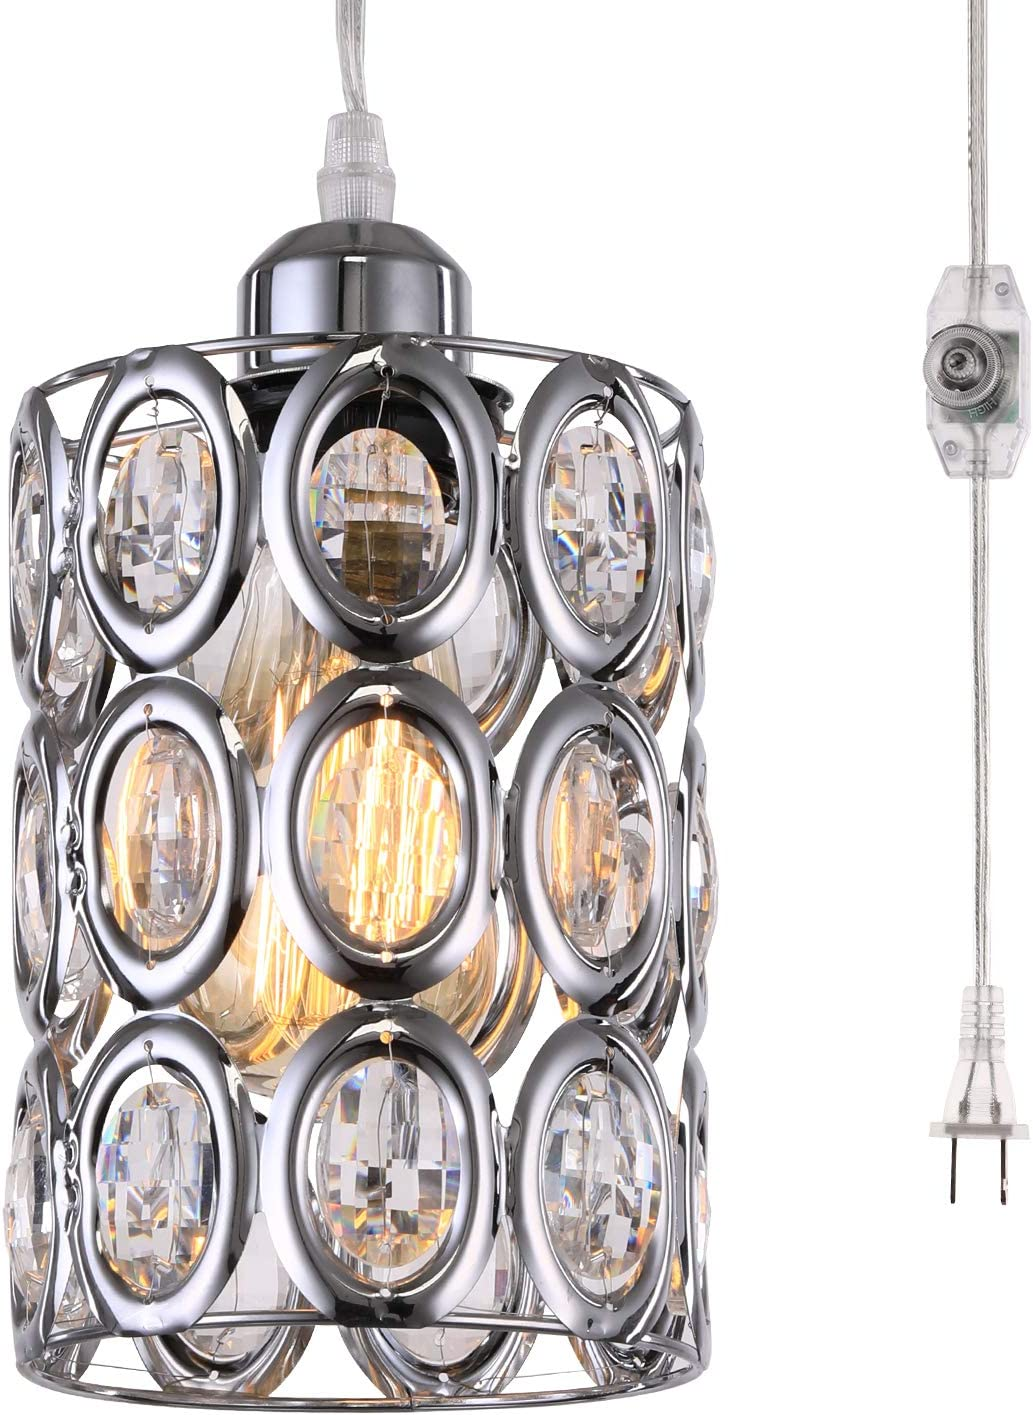 HMVPL Plug in Crystal Pendant Light with ON Off Dimmer Switch and 16.4 ft Clear Hanging Cord, Modern Chrome Cylinder Chandelier Swag Lamp for Kitchen Island Dining Table Bedroom Girls Cabinet Closet